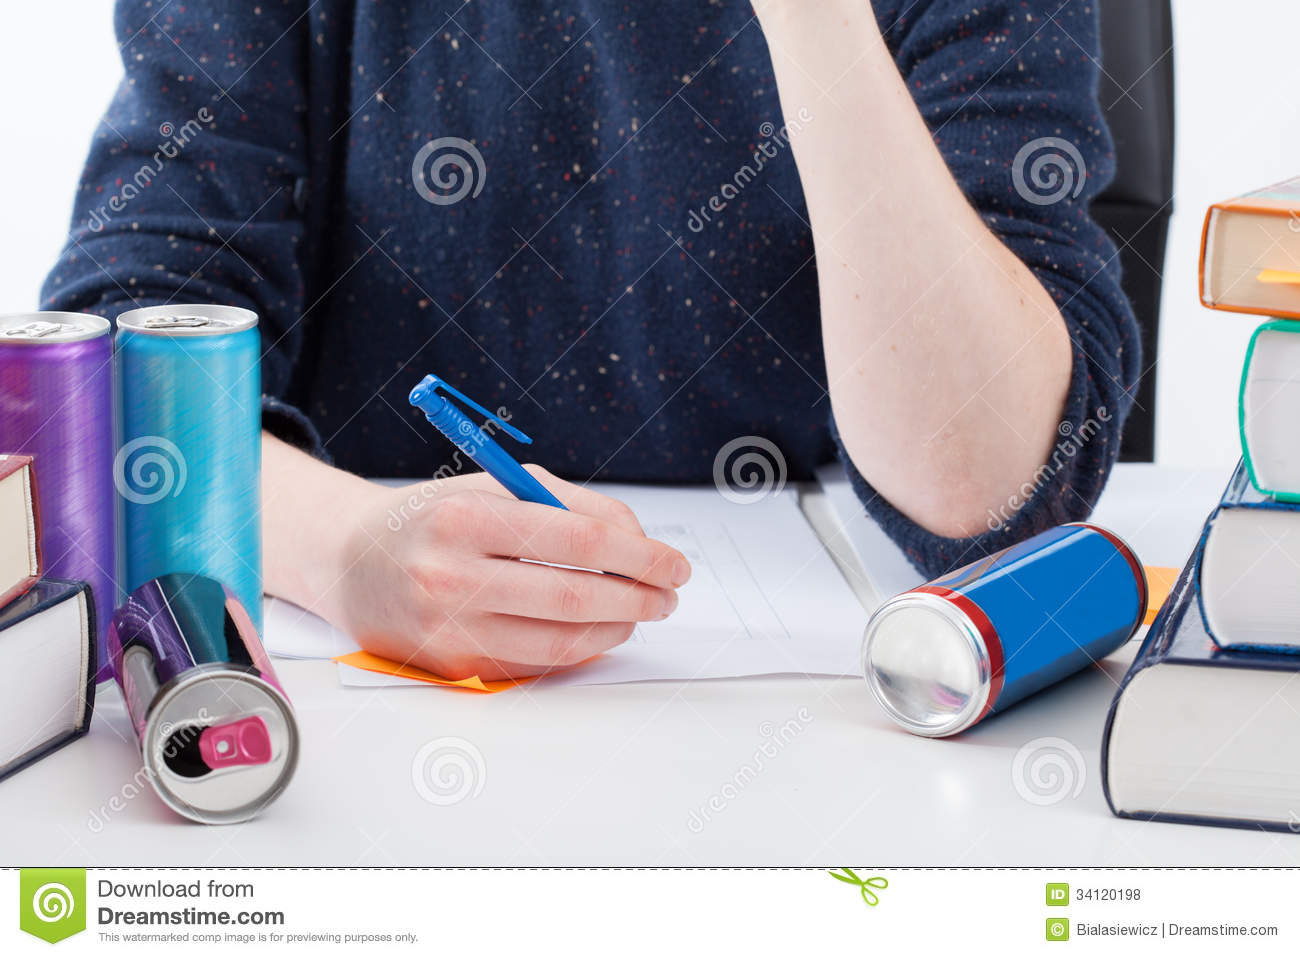 energy drinks 8 essay Top 14 energy drink dangers the dangers of energy drinks are getting a lot of press because of the sheer volume of energy stimulating products in the marketplace.